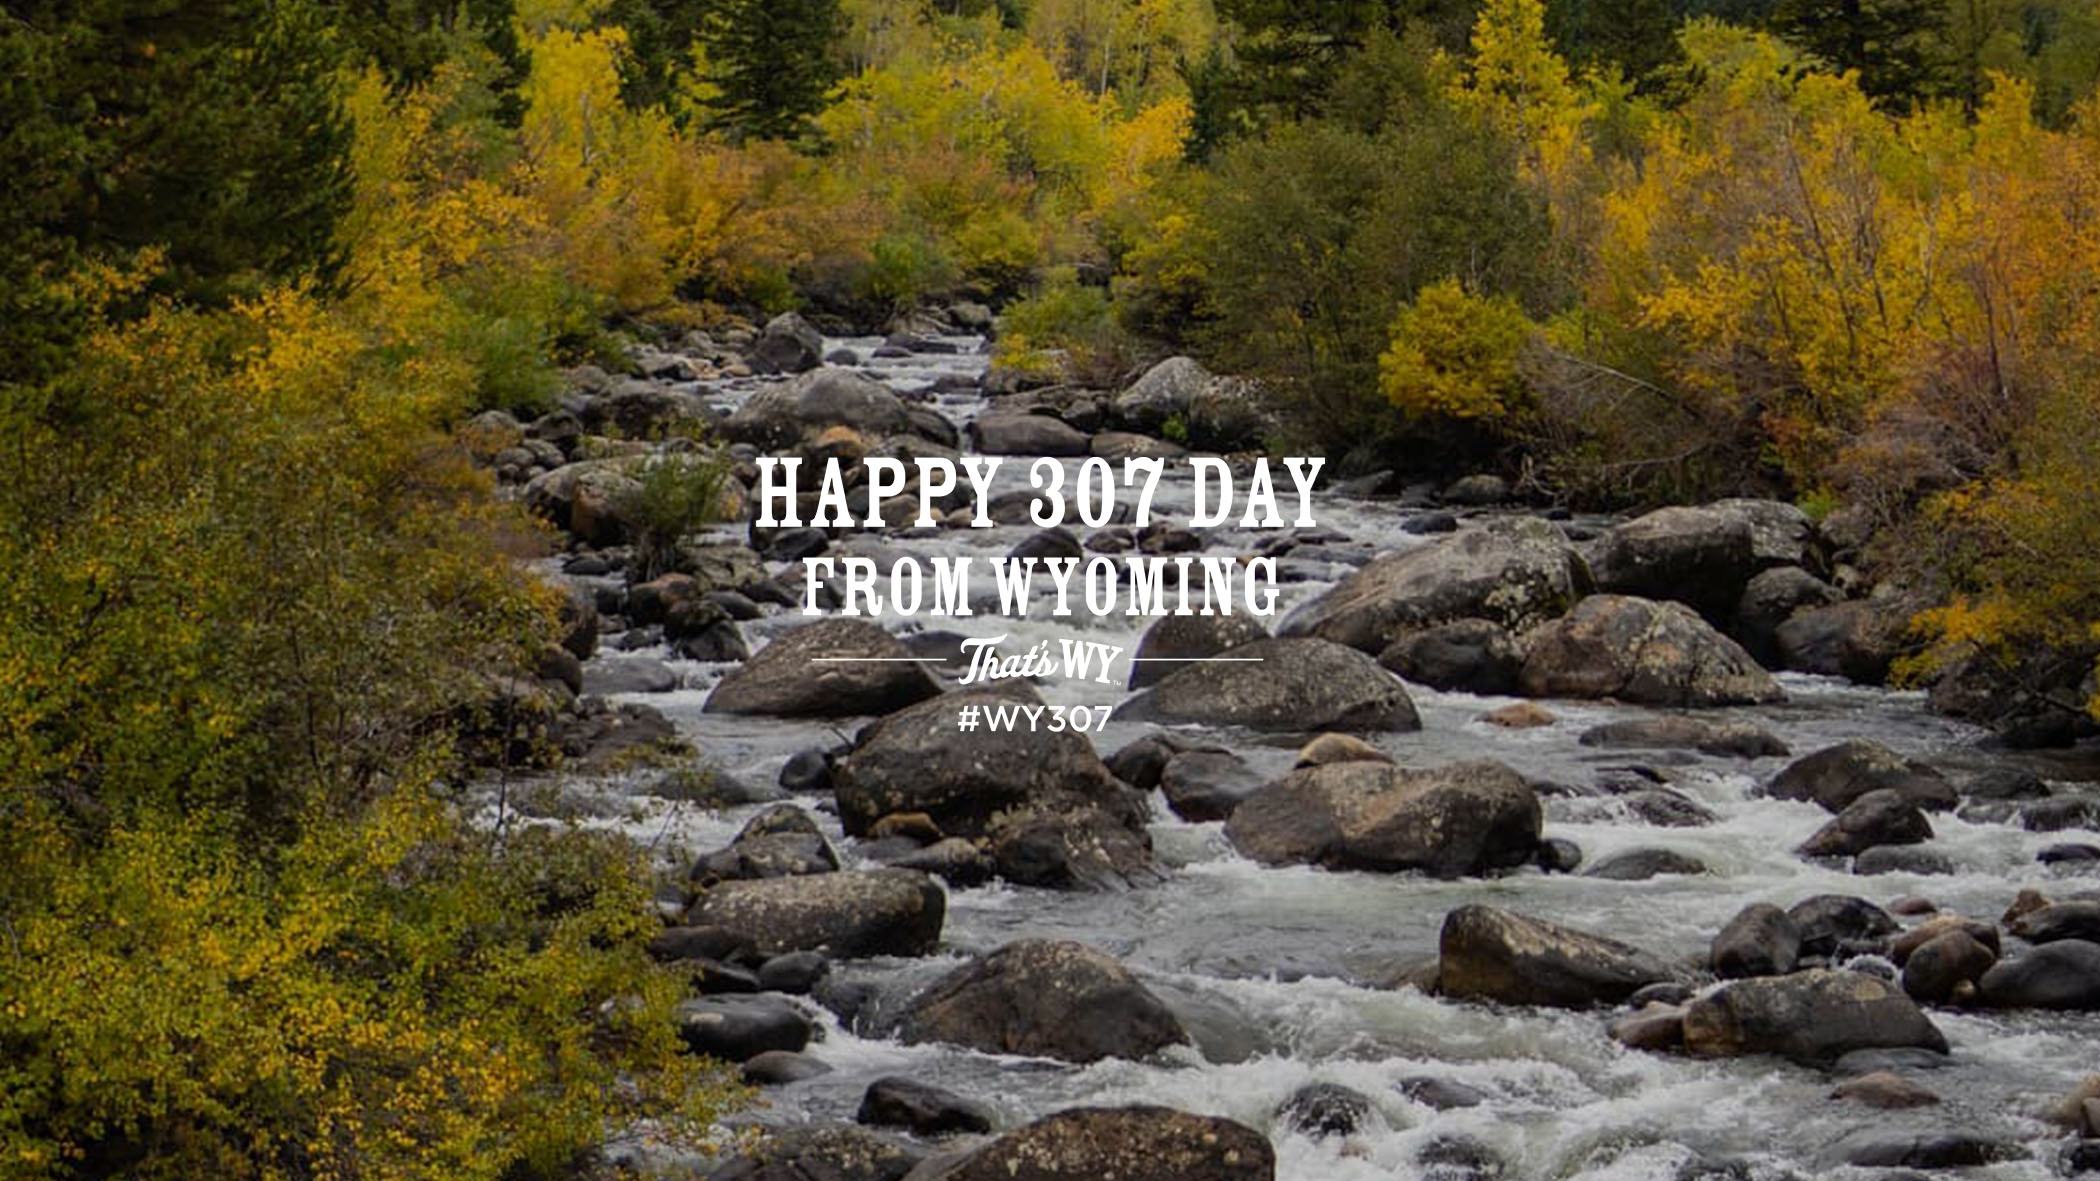 Happy 307 Day From Wyoming, That's WY #WY307